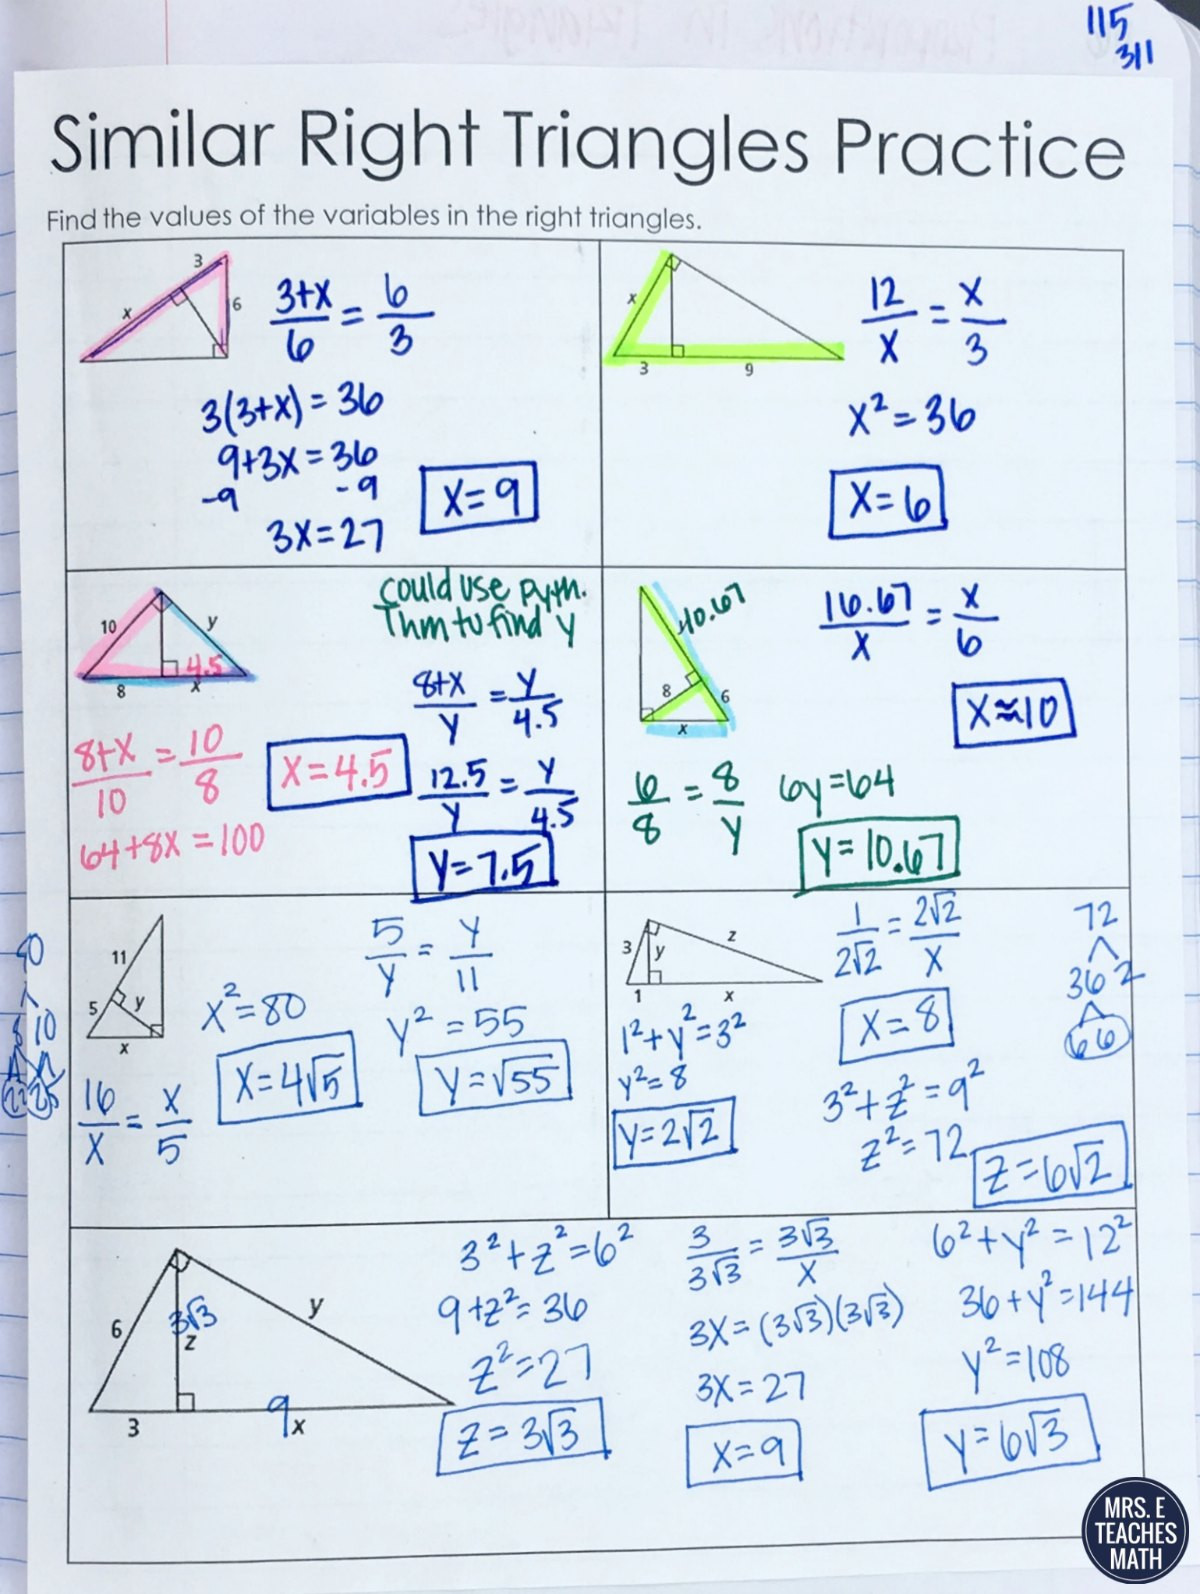 Special Right Triangles Practice Worksheet Triangle Similarity Inb Pages